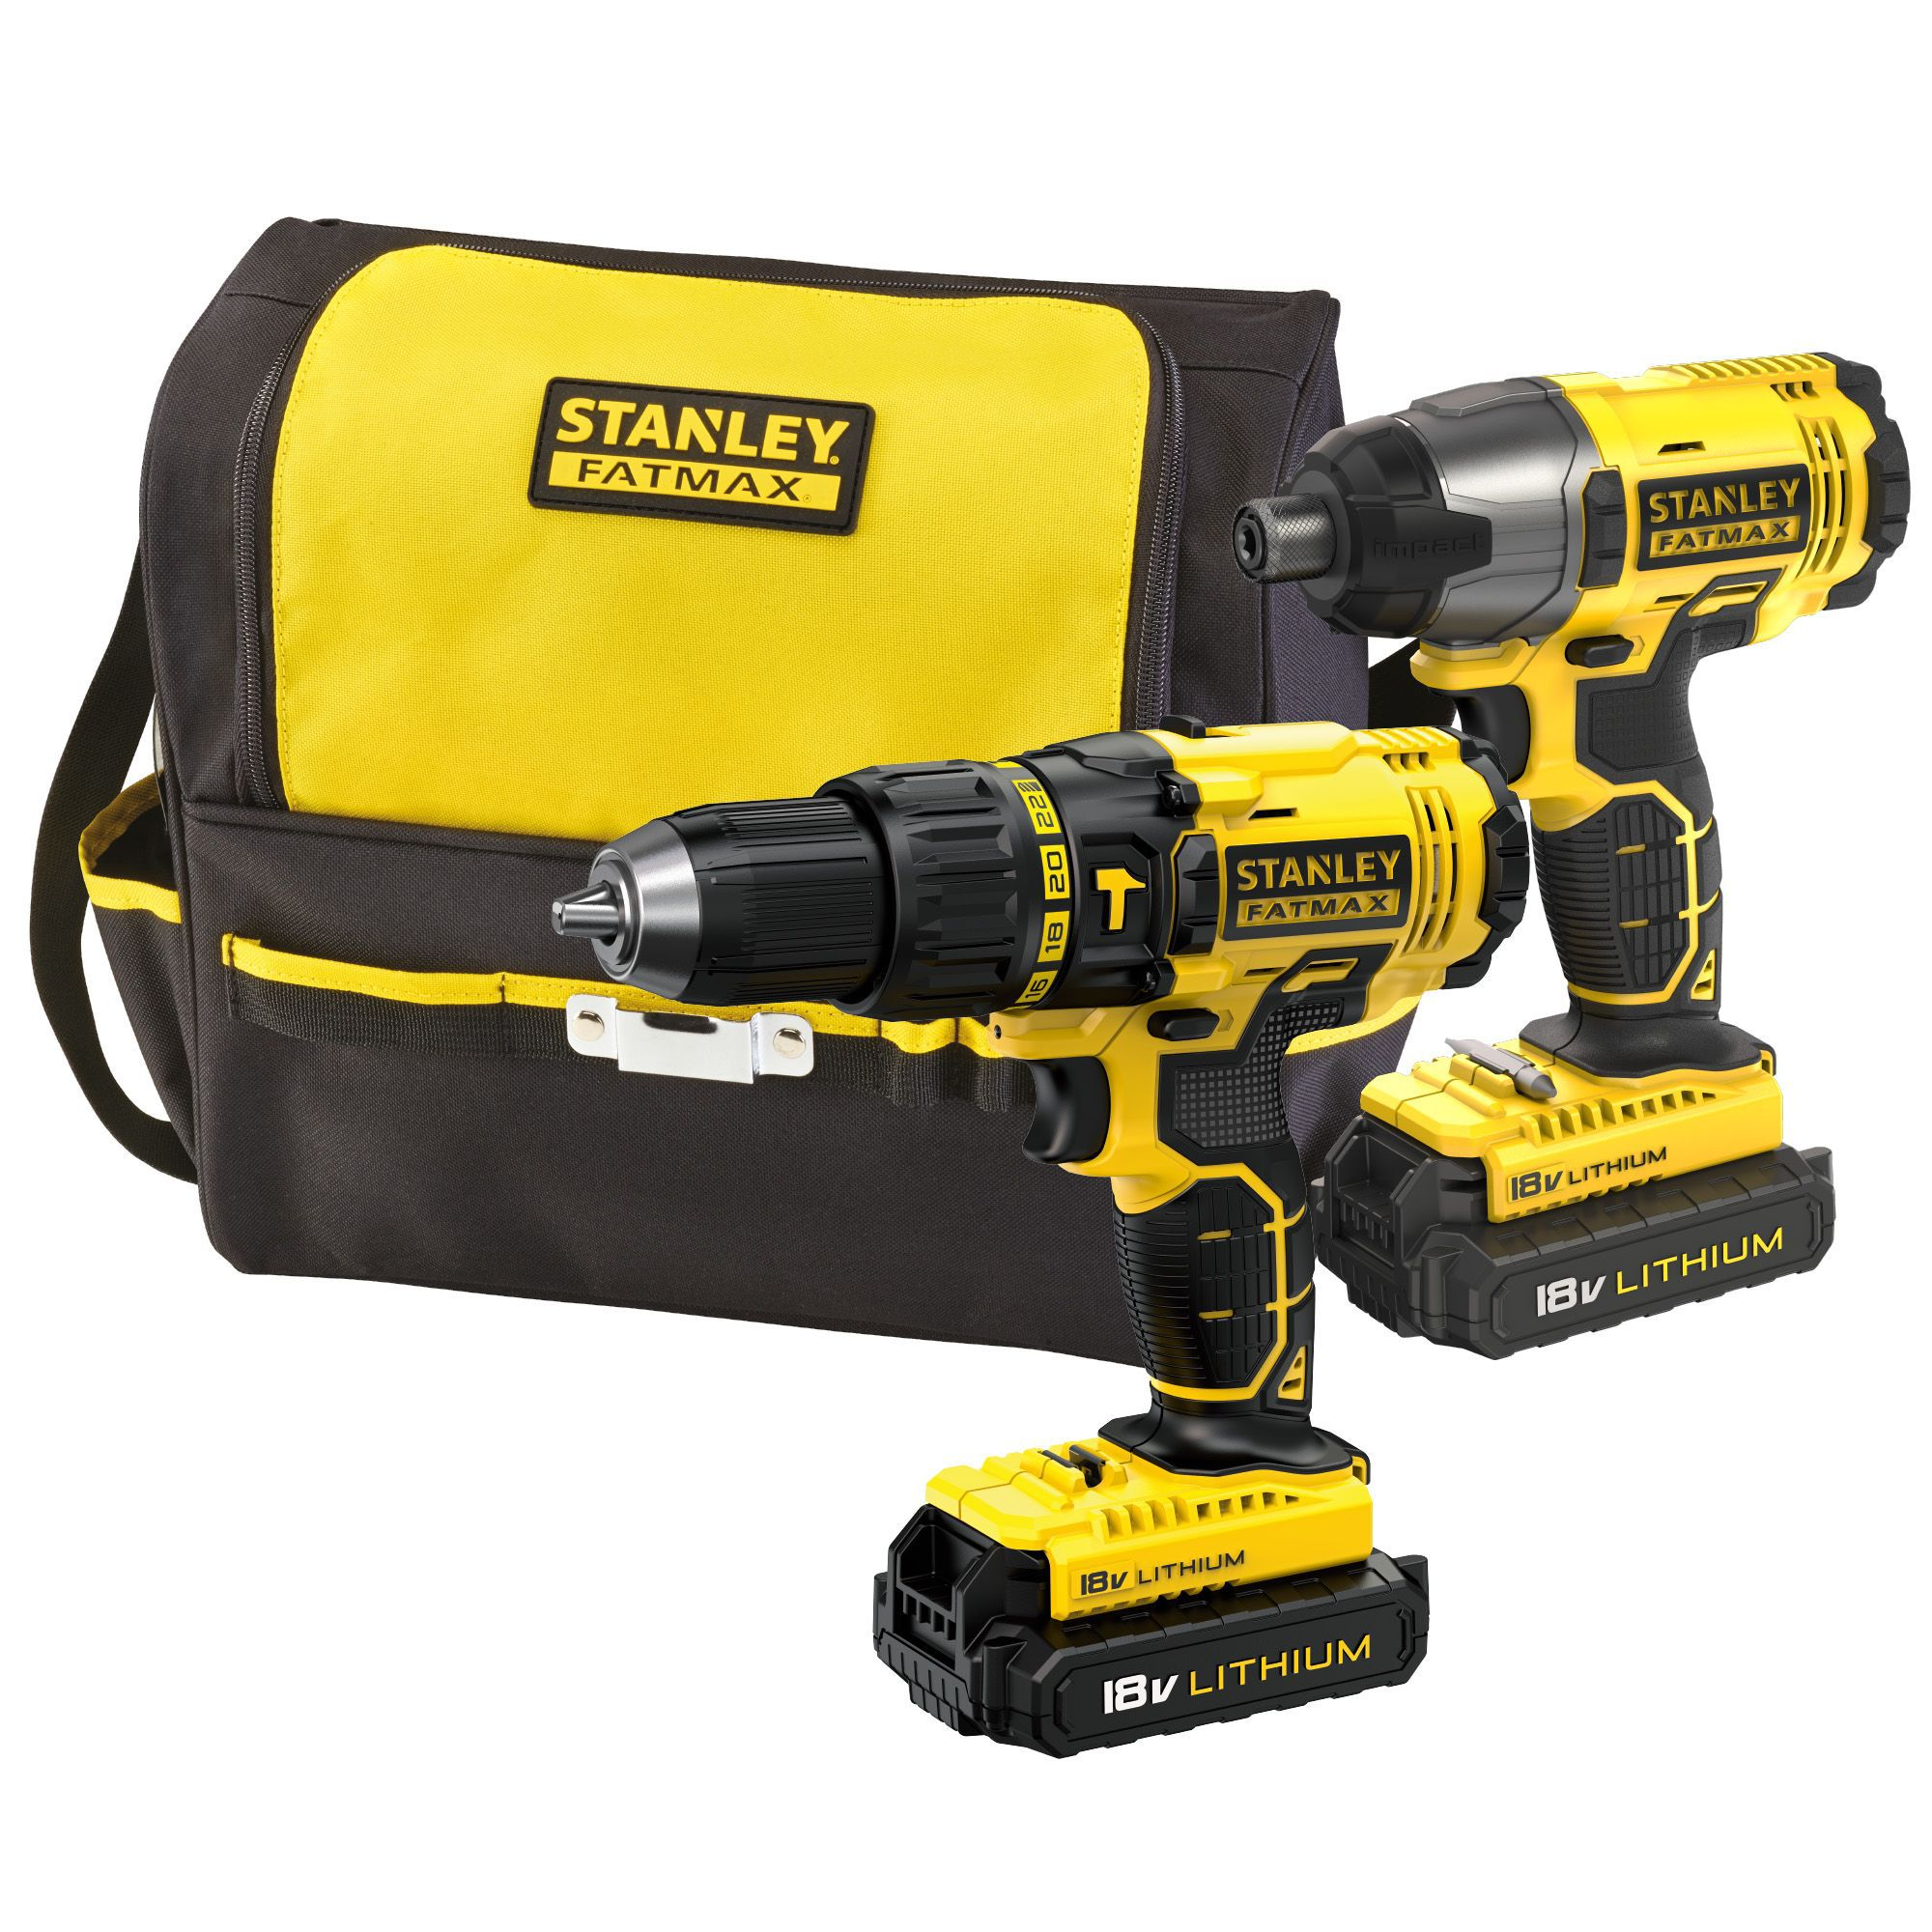 Pack of 100 Stanley Drill and Accessories